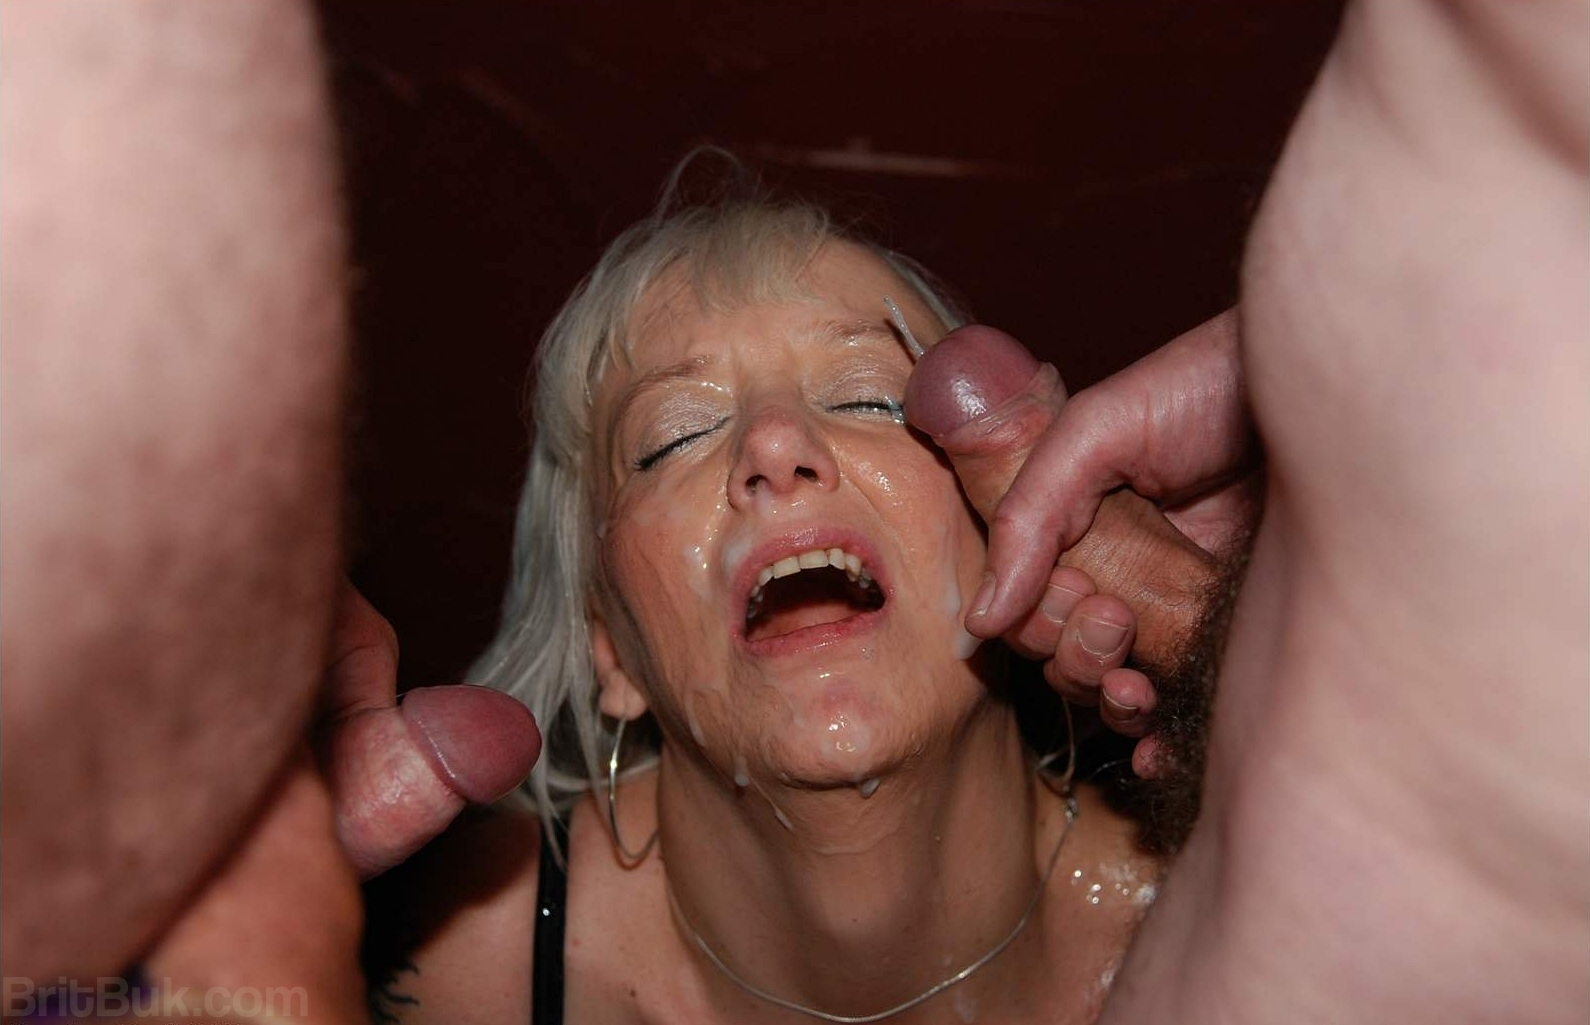 Old granny cum slurper speaking, would